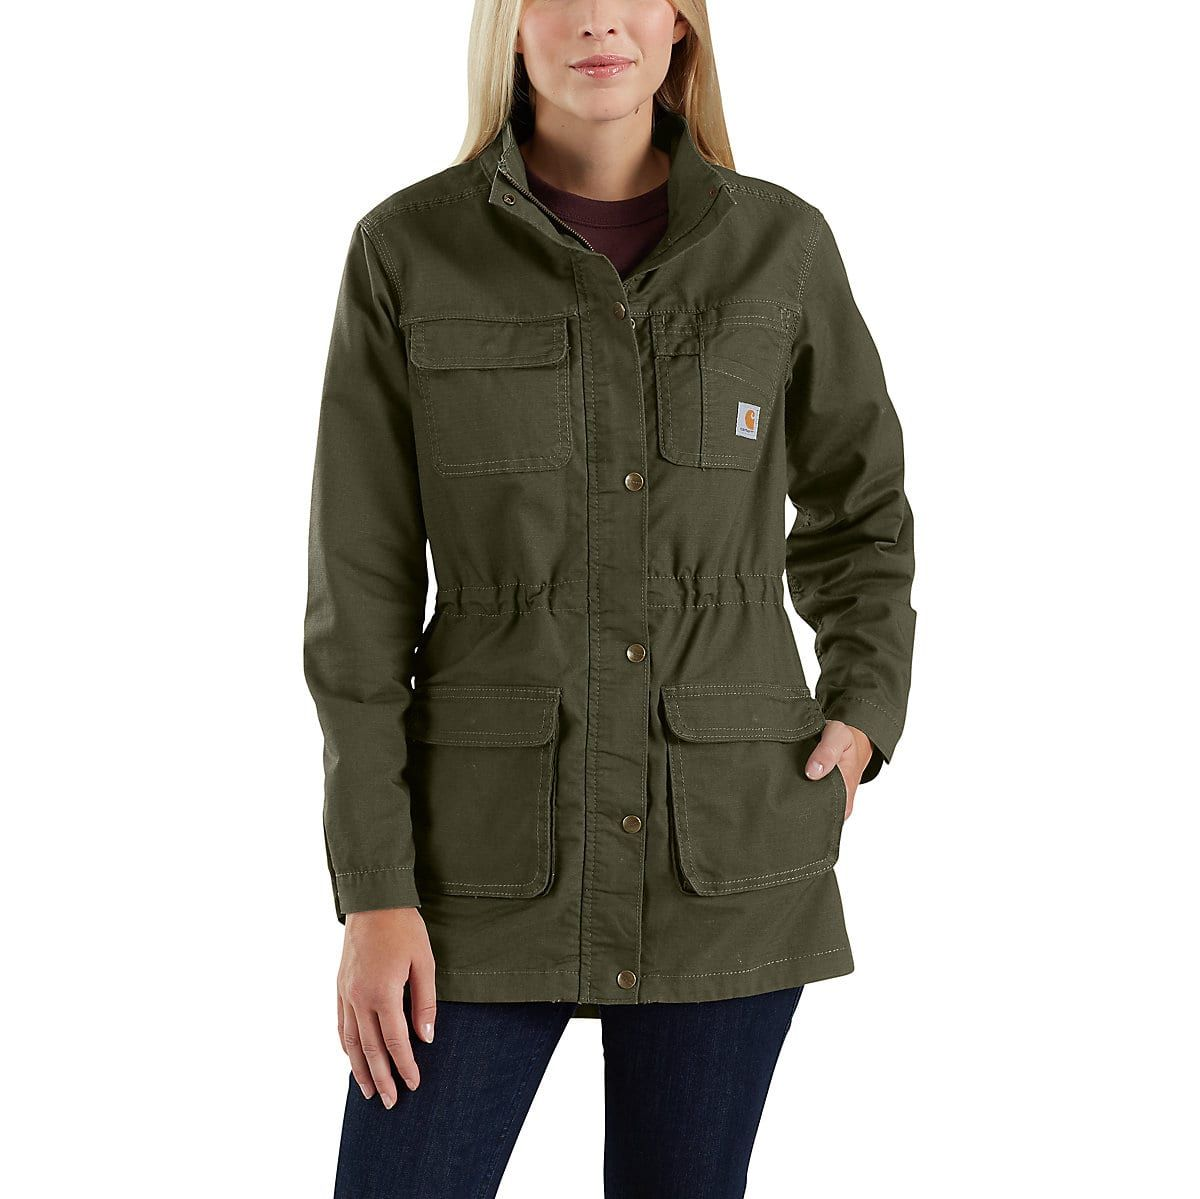 Shop The Smithville Jacket For Women S At Carhartt Com For Women S Outerwear That Works As Hard As You Do Carhartt Jacket Jackets Carhartt Women [ 1199 x 1200 Pixel ]